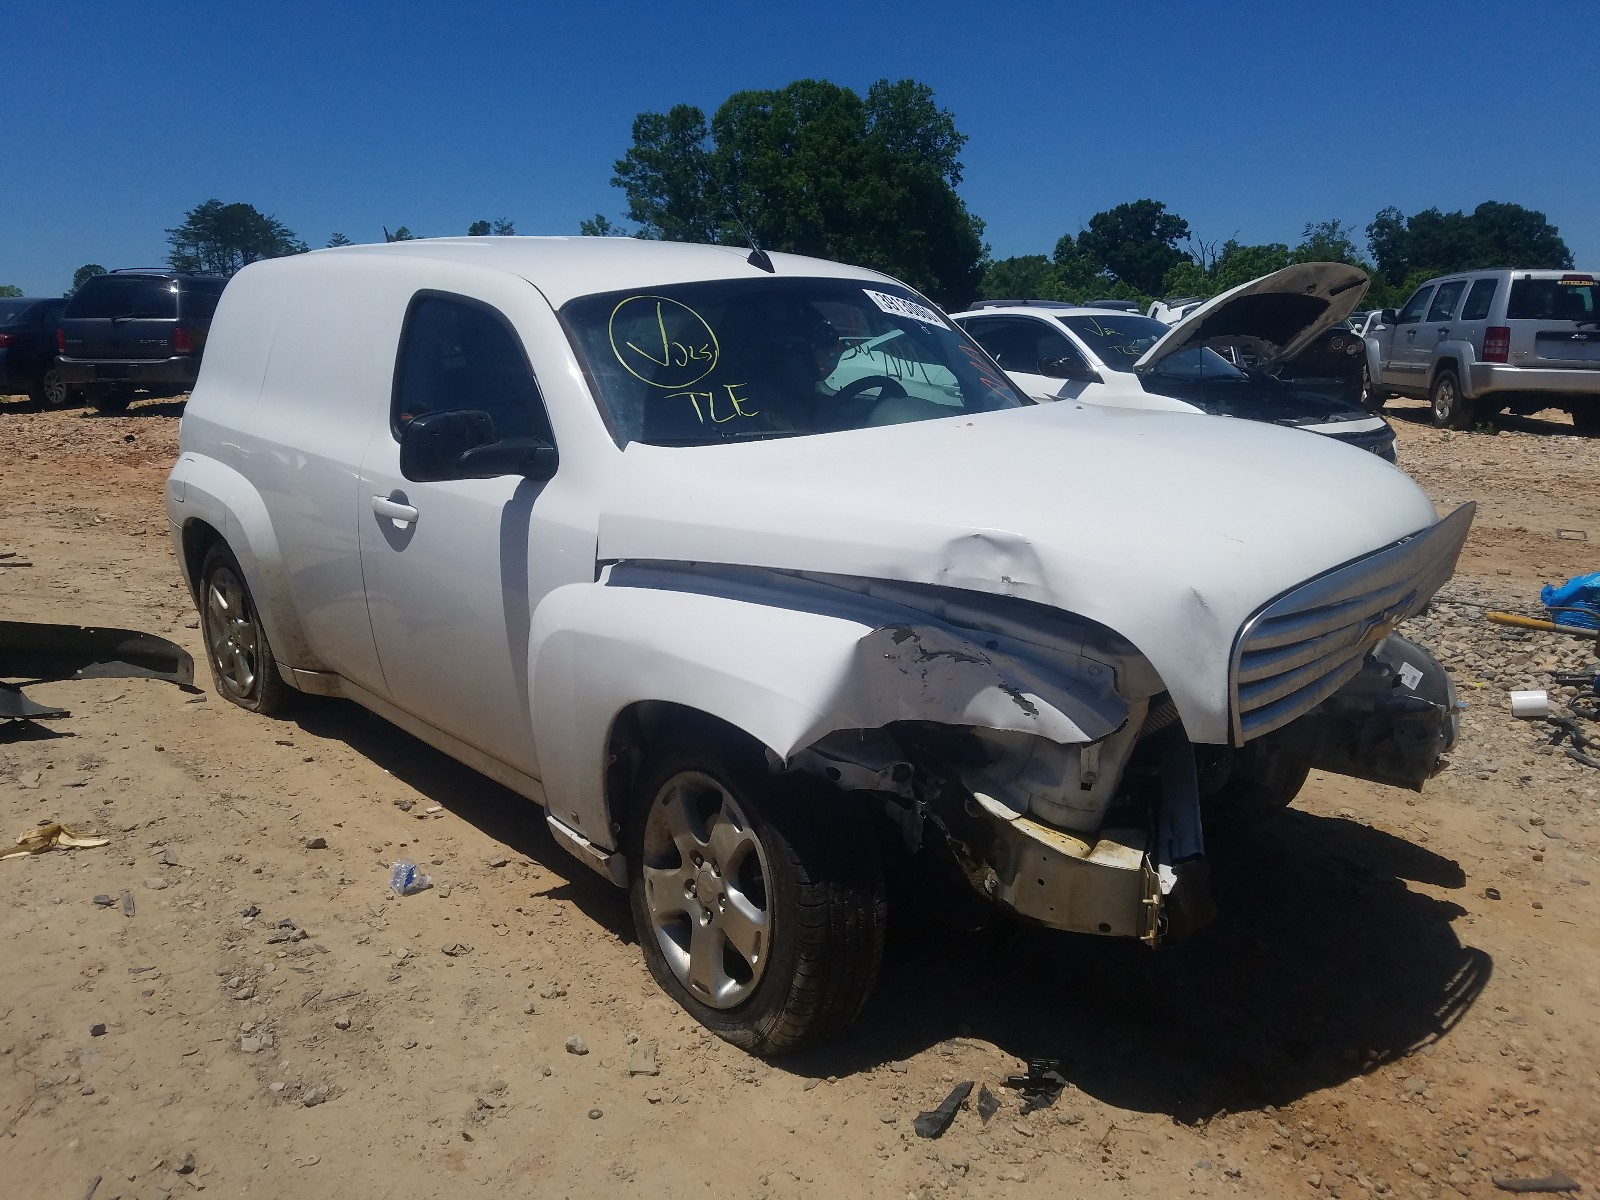 2008 Chevrolet Hhr Panel For Sale At Copart China Grove Nc Lot